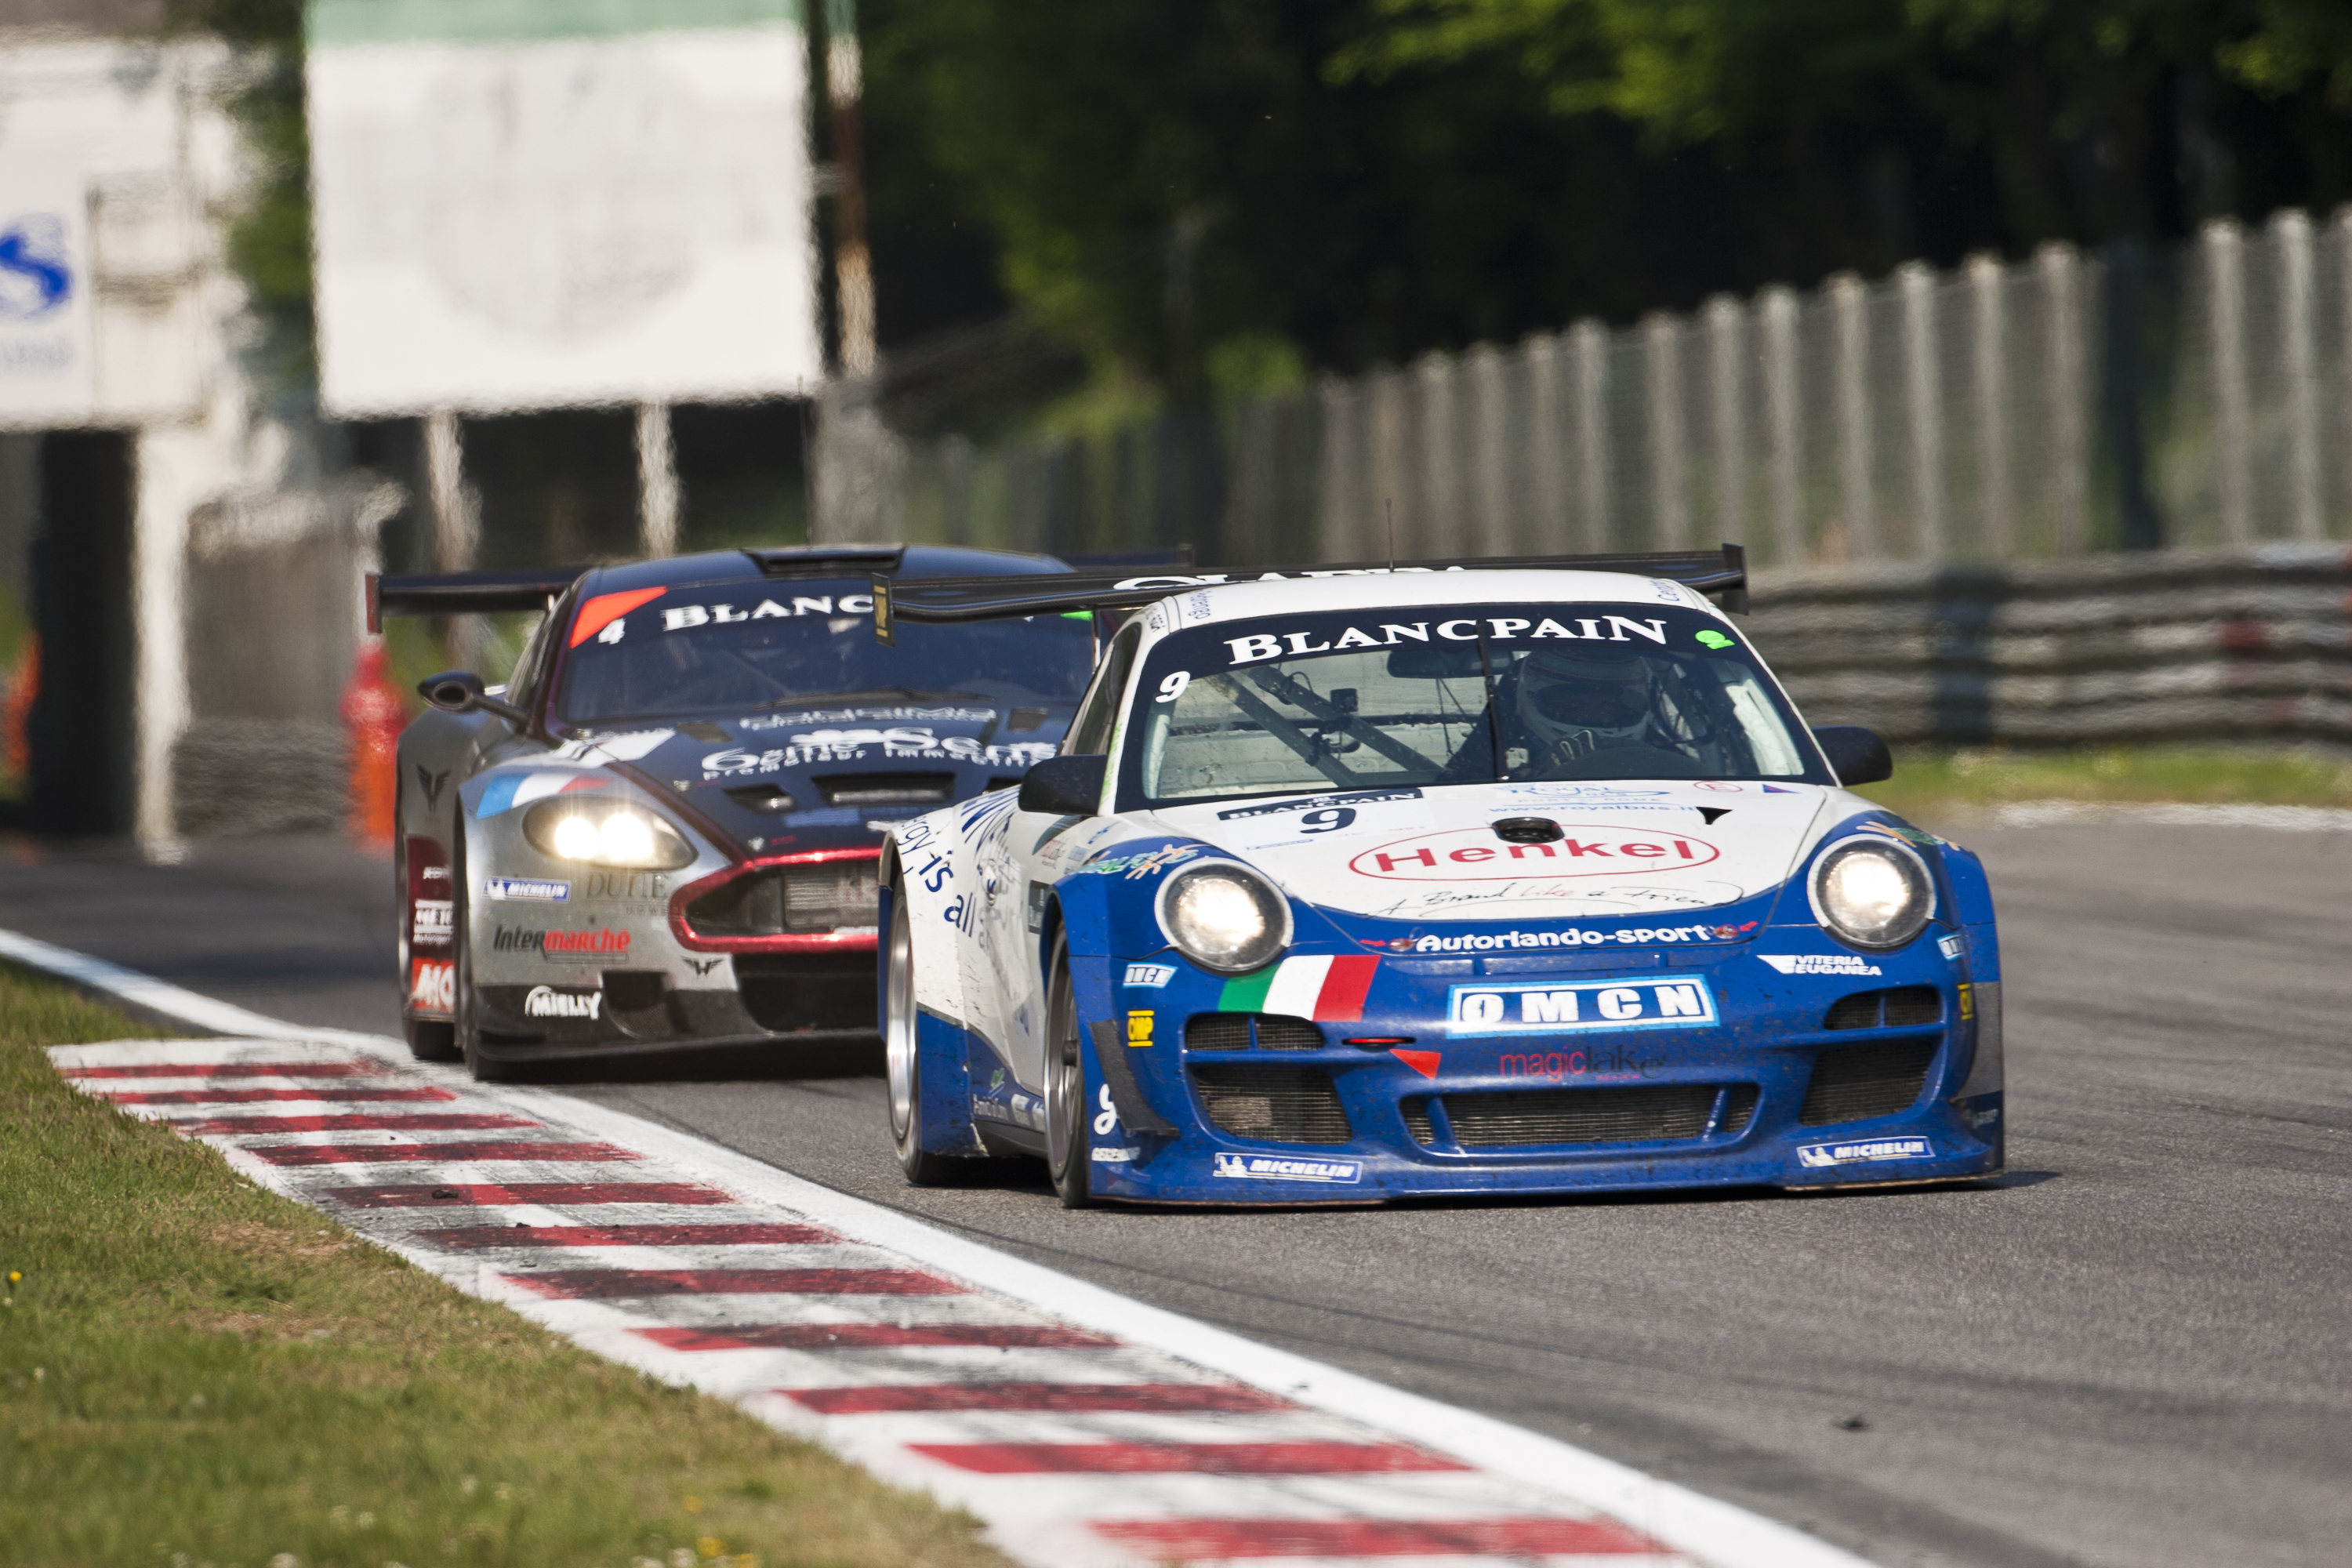 Porsche win first race of the New Blancpain Endurance Series